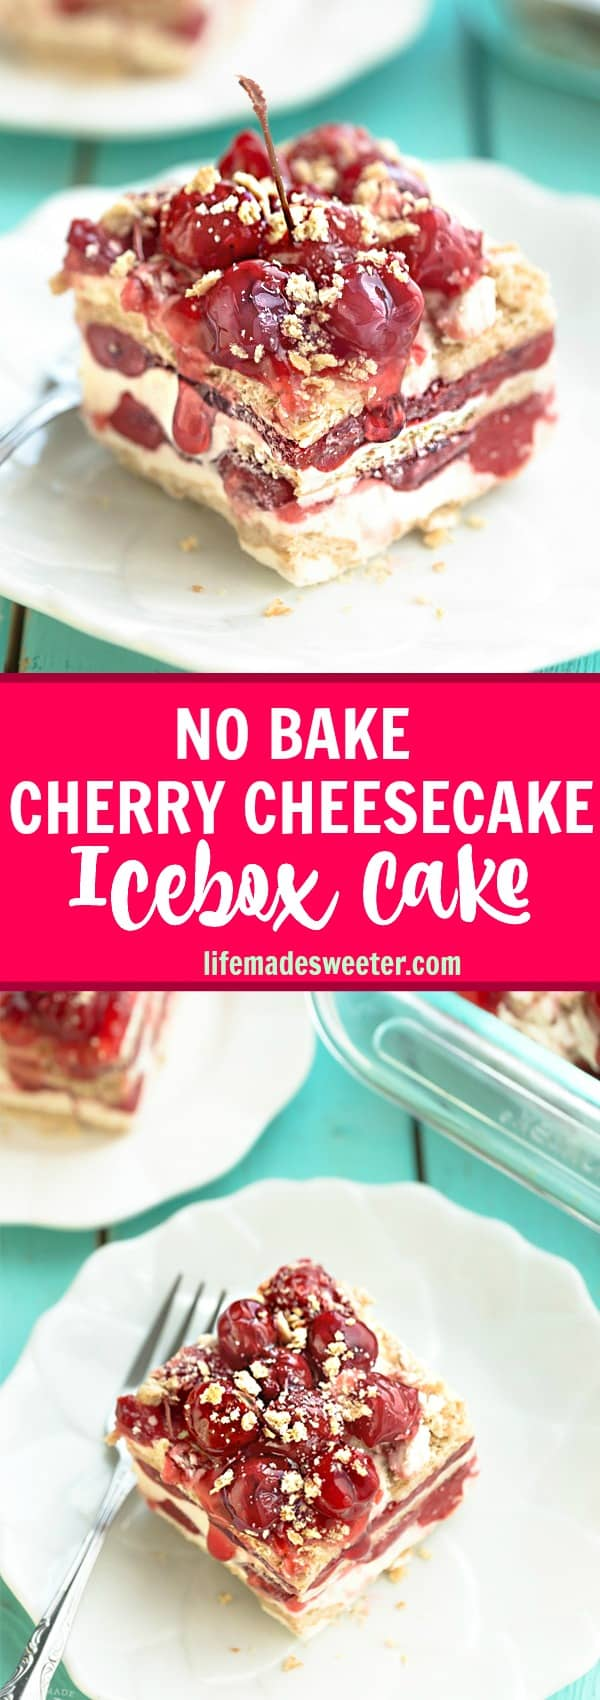 No Bake Cherry Cheesecake Icebox Cake is the perfect easy make ahead dessert! Best of all, it's made with just 6 ingredients and amazing for barbecues, potlucks and holiday parties!